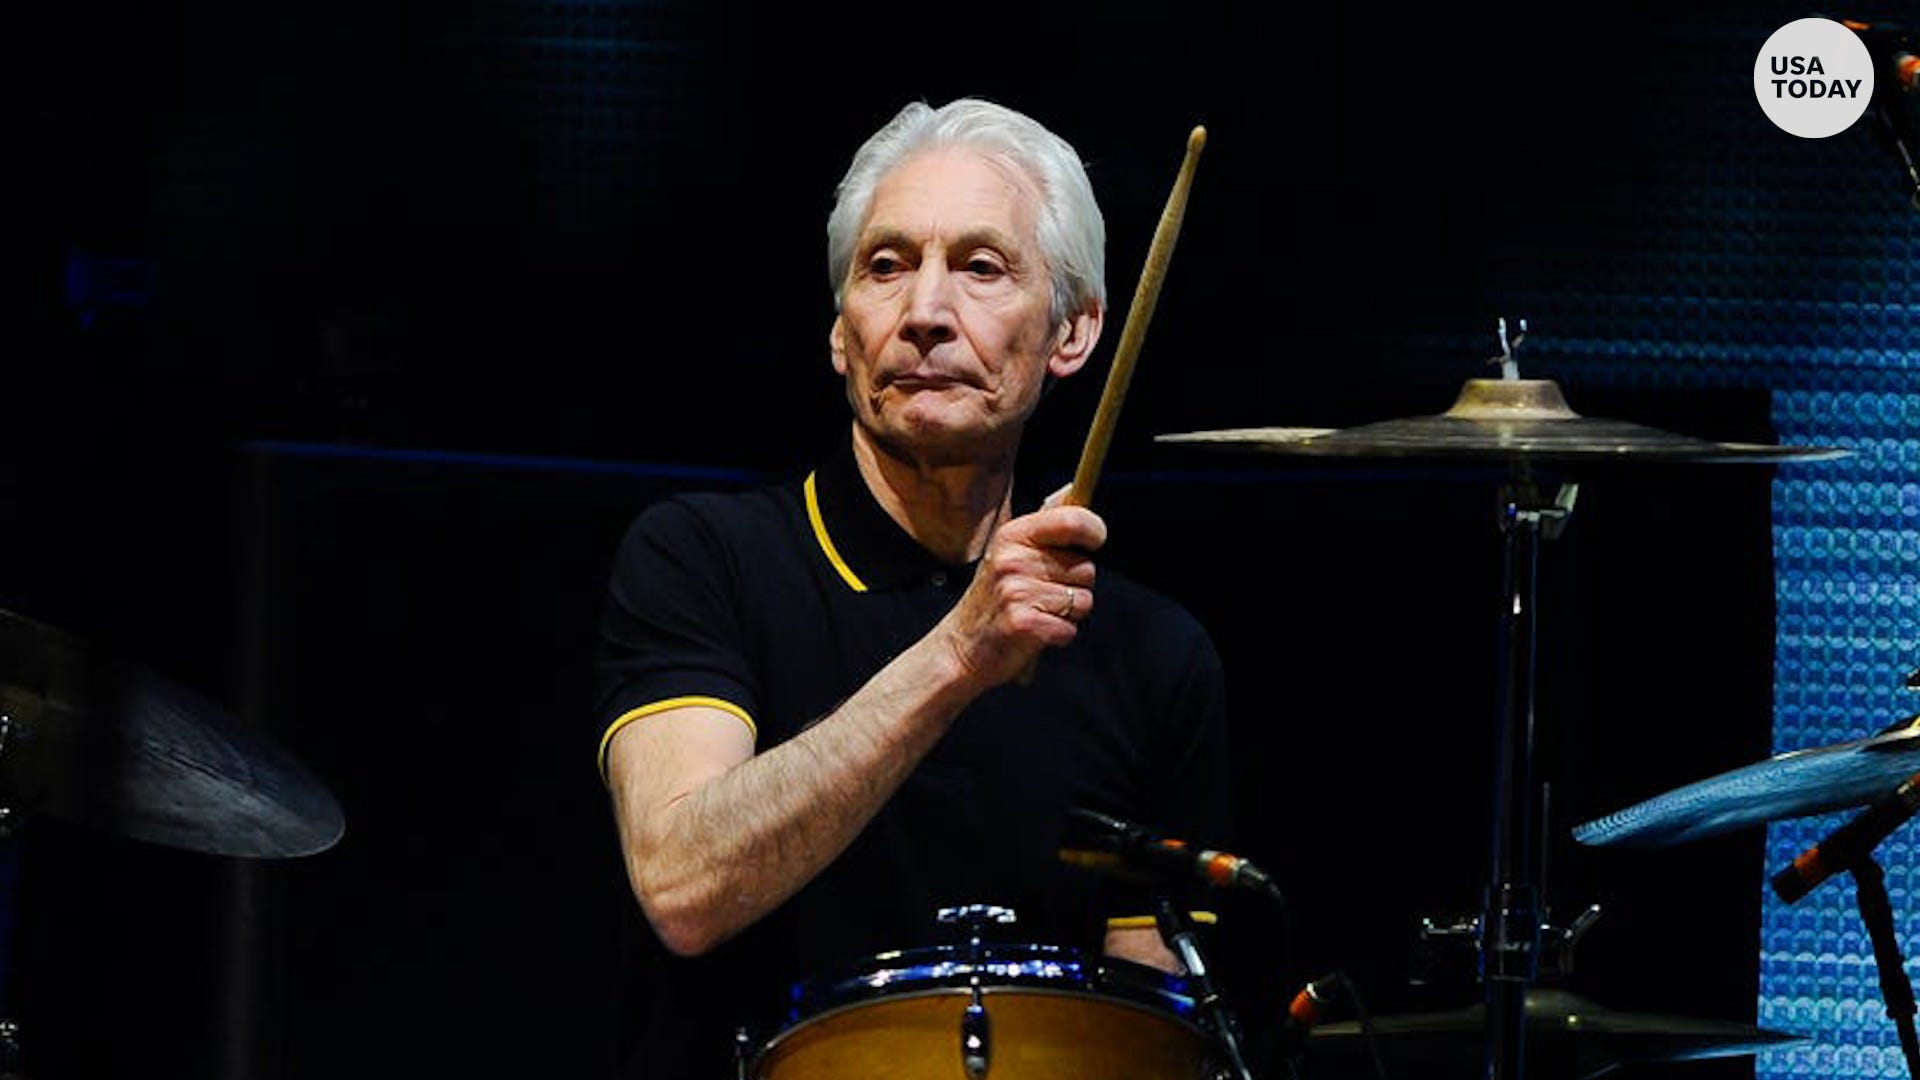 One of the greatest : Mick Jagger, Keith Richards, more mourn Rolling Stones  Charlie Watts